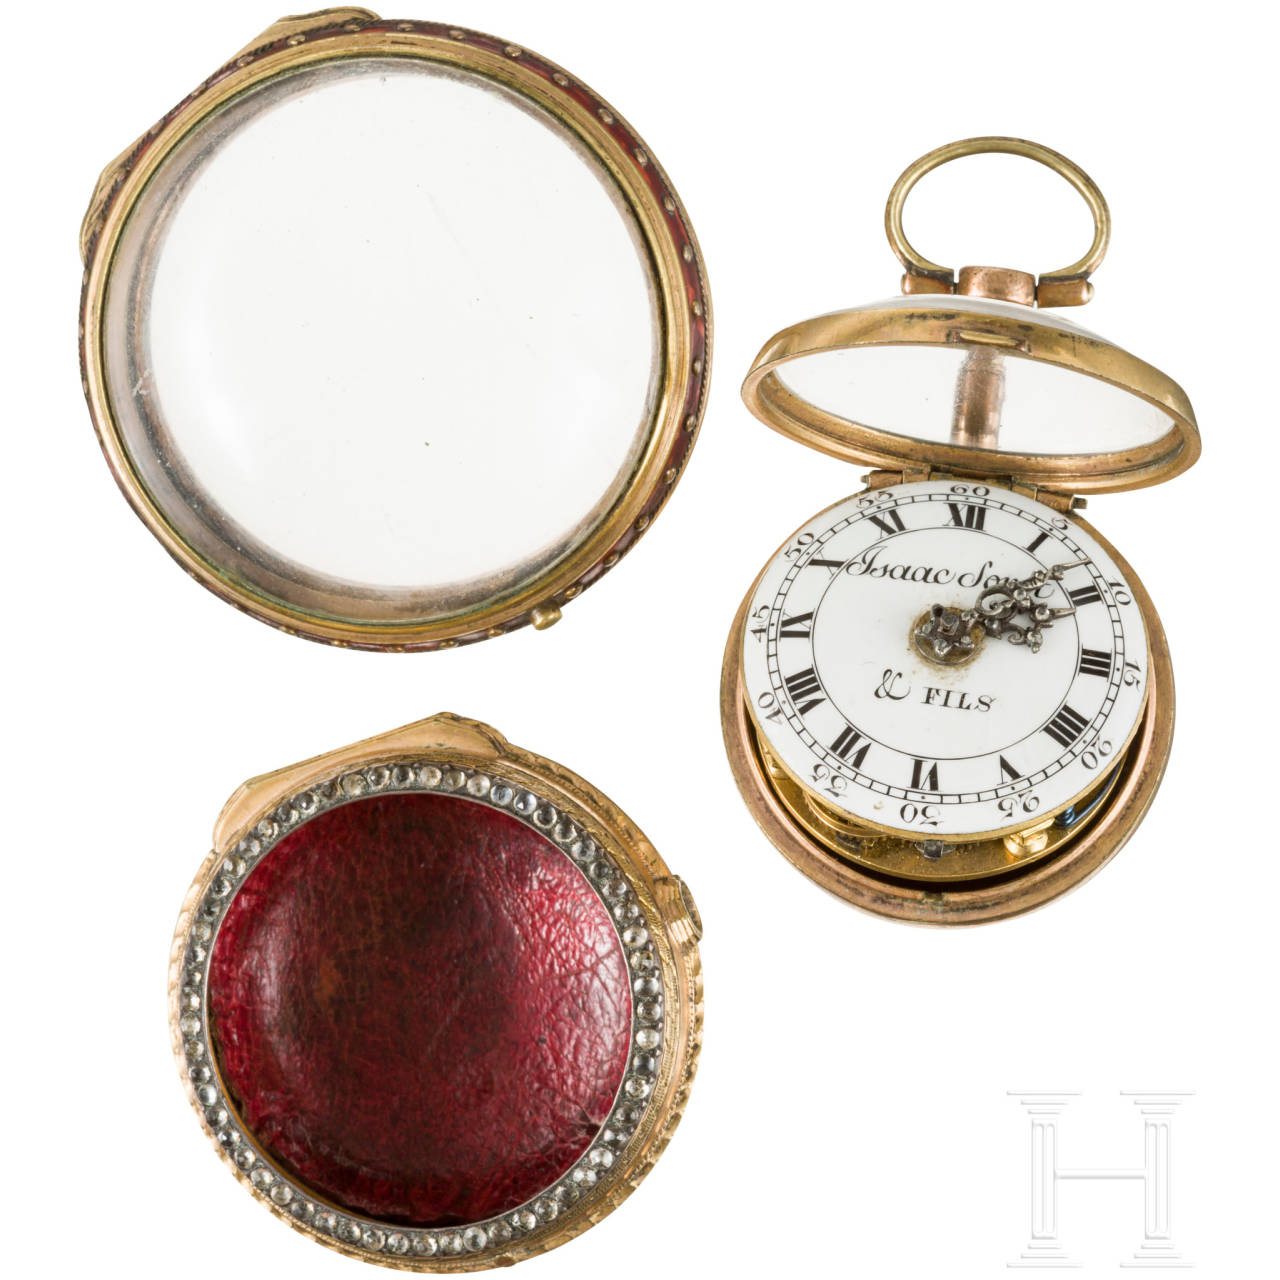 A diamond studded, enamelled verge watch with inner and outer case, Isaac Soret & Fils, Geneva, circa 1750